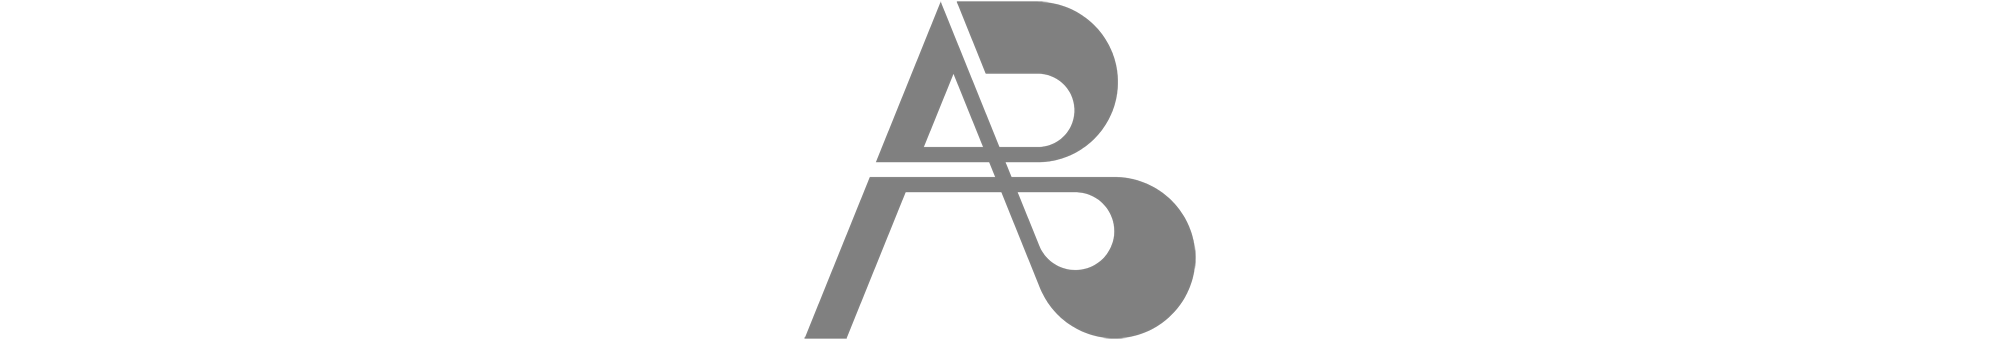 AB-logo-website.png